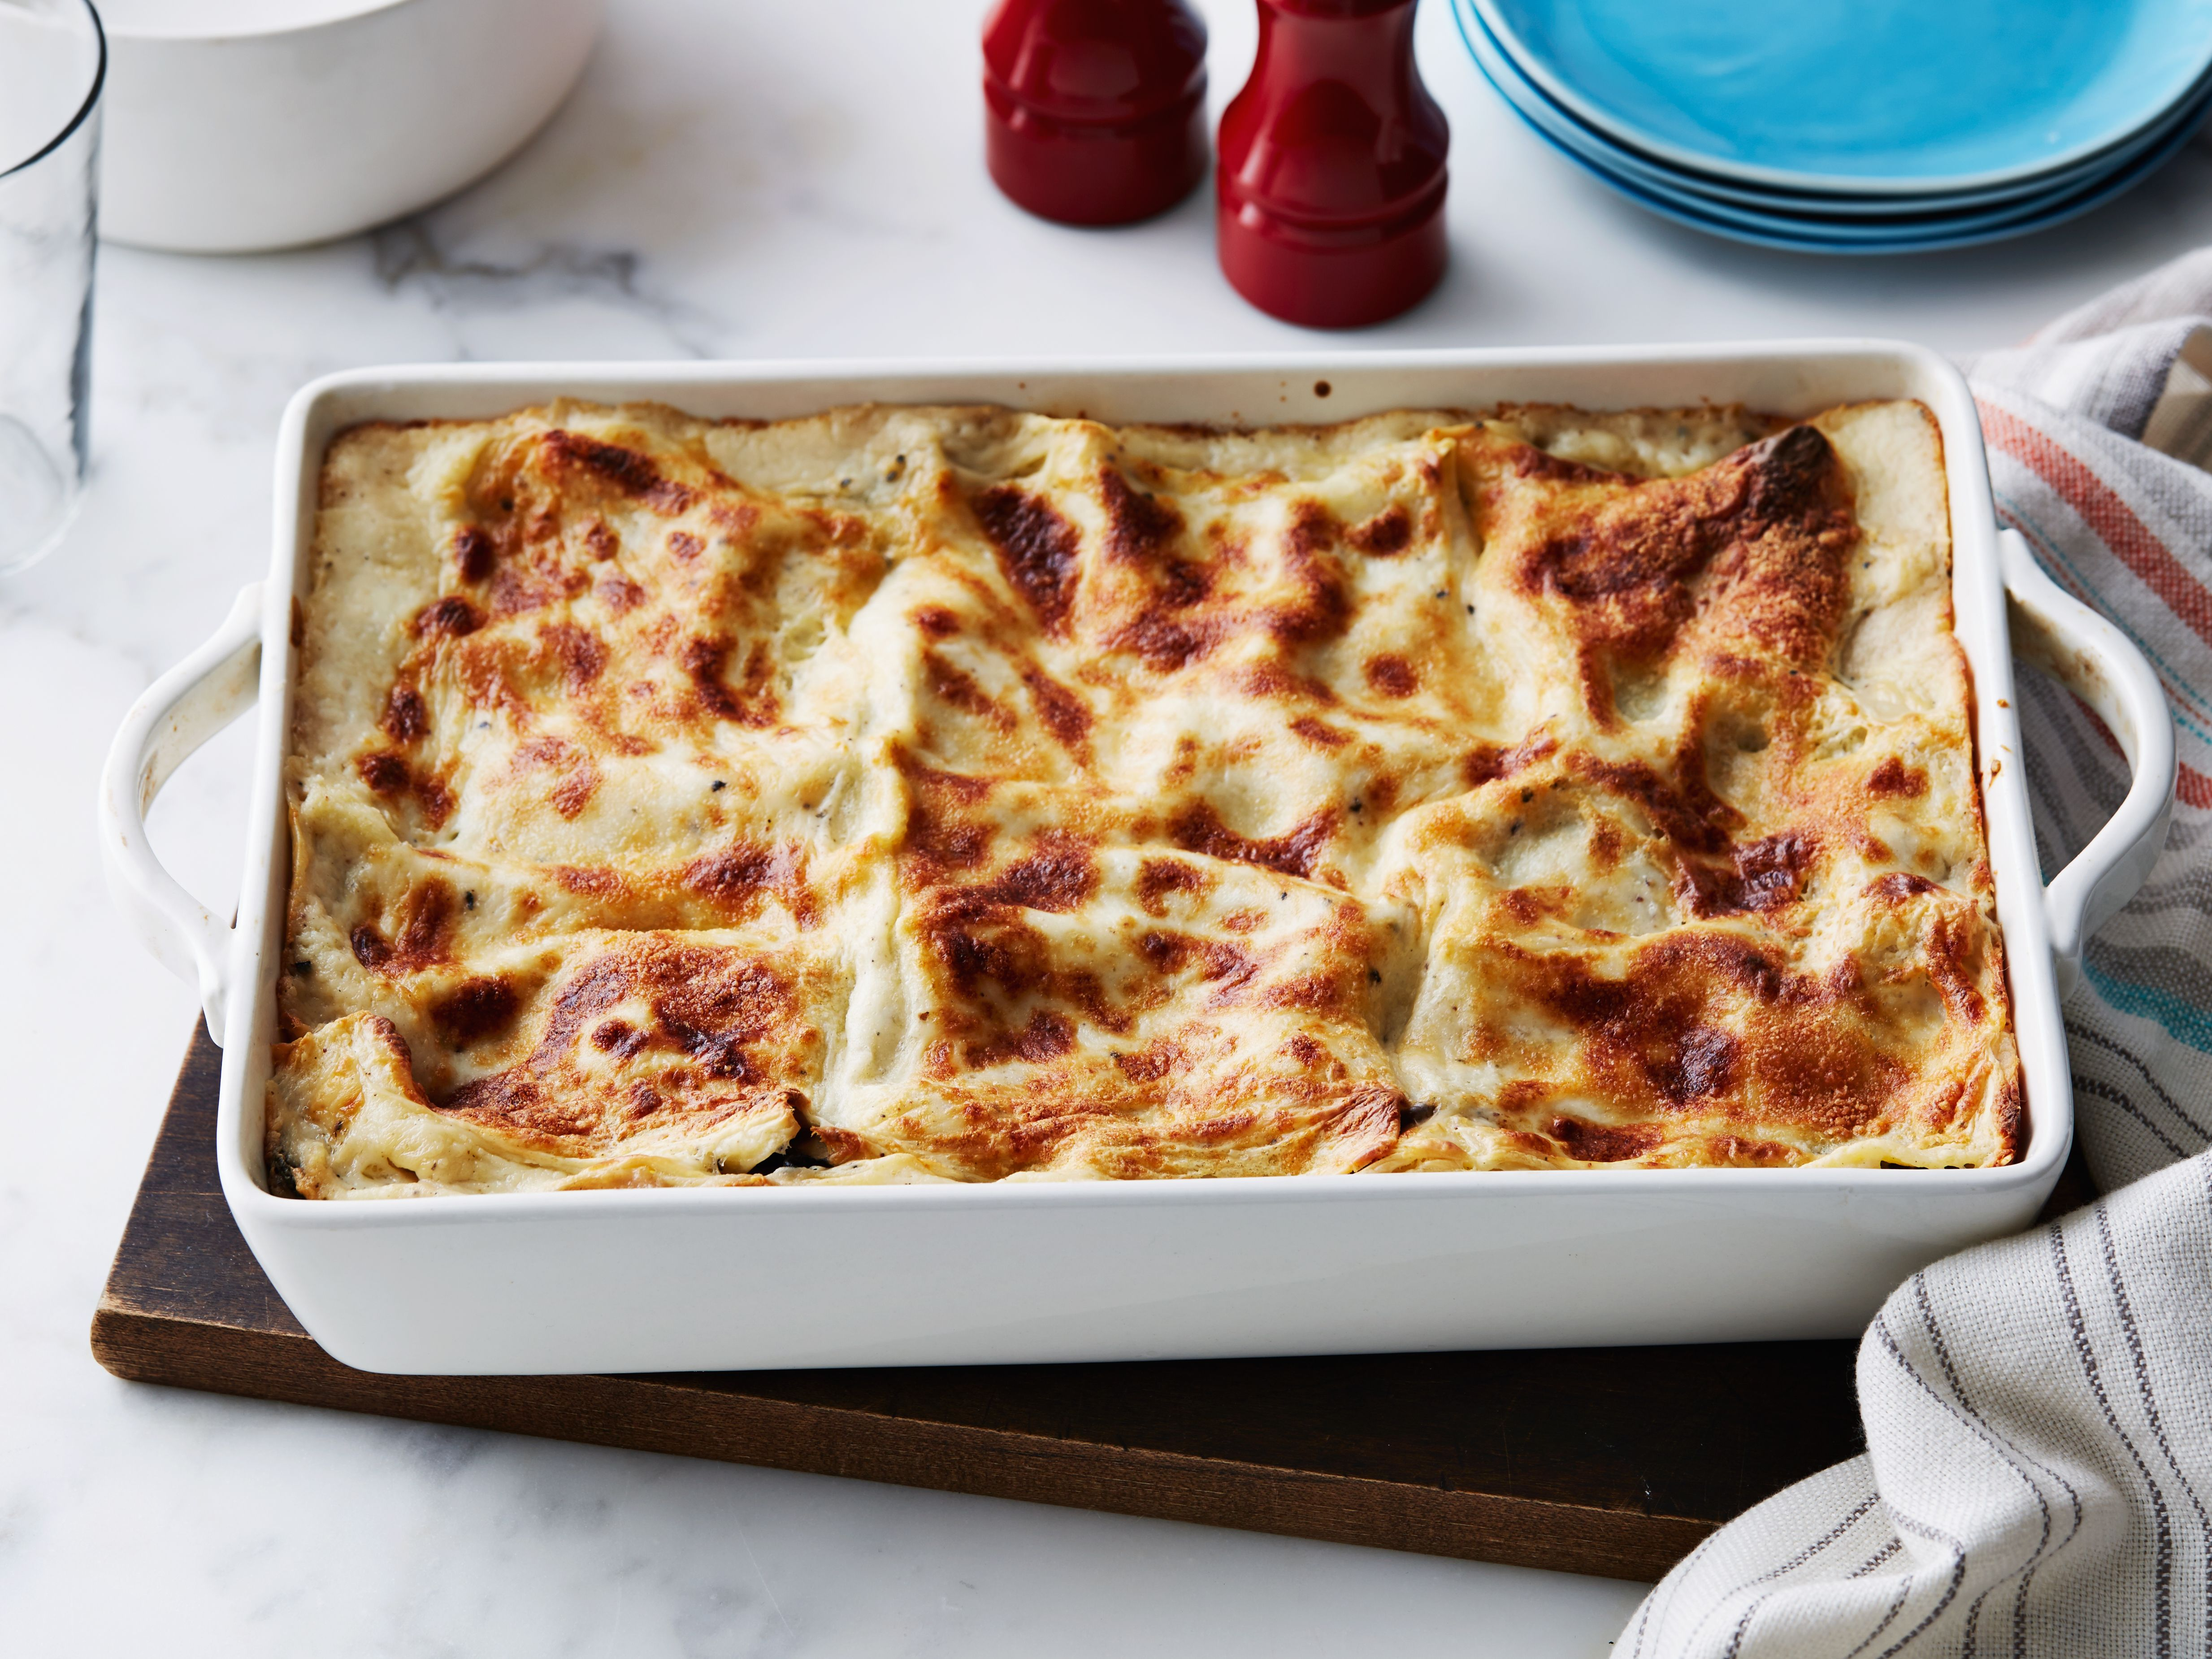 Portobello mushroom lasagna recipe pinterest mushroom lasagna portobello mushroom lasagna recipe from ina garten via food network use green pepper and red sauce forumfinder Image collections